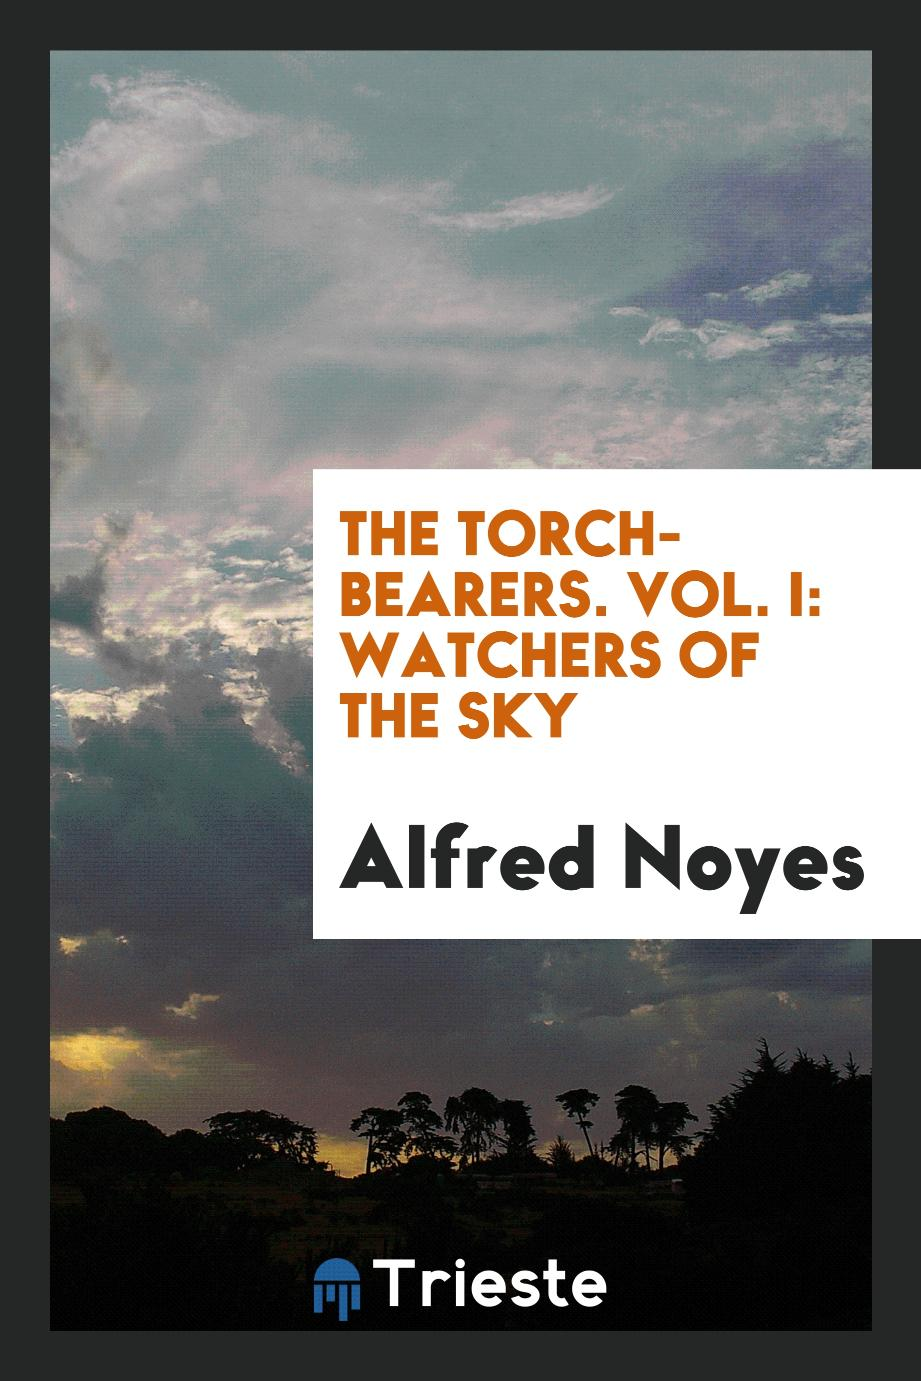 Alfred Noyes - The Torch-Bearers. Vol. I: Watchers of the Sky